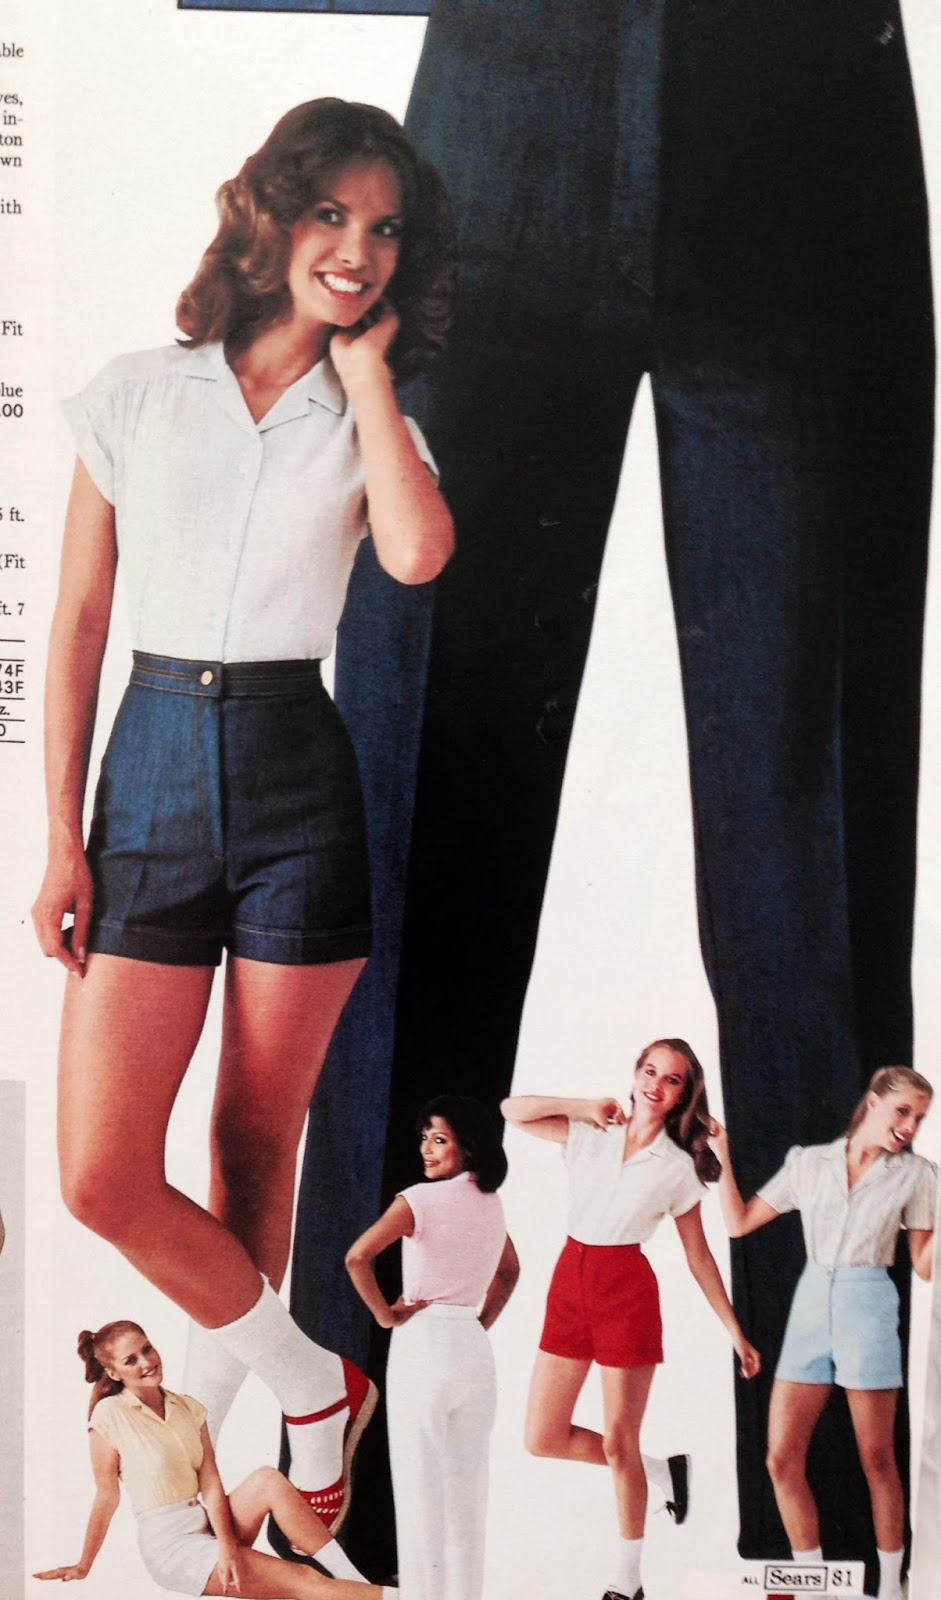 HOW SEARS WANTED YOU TO SPEND THE SUMMER OF 1982